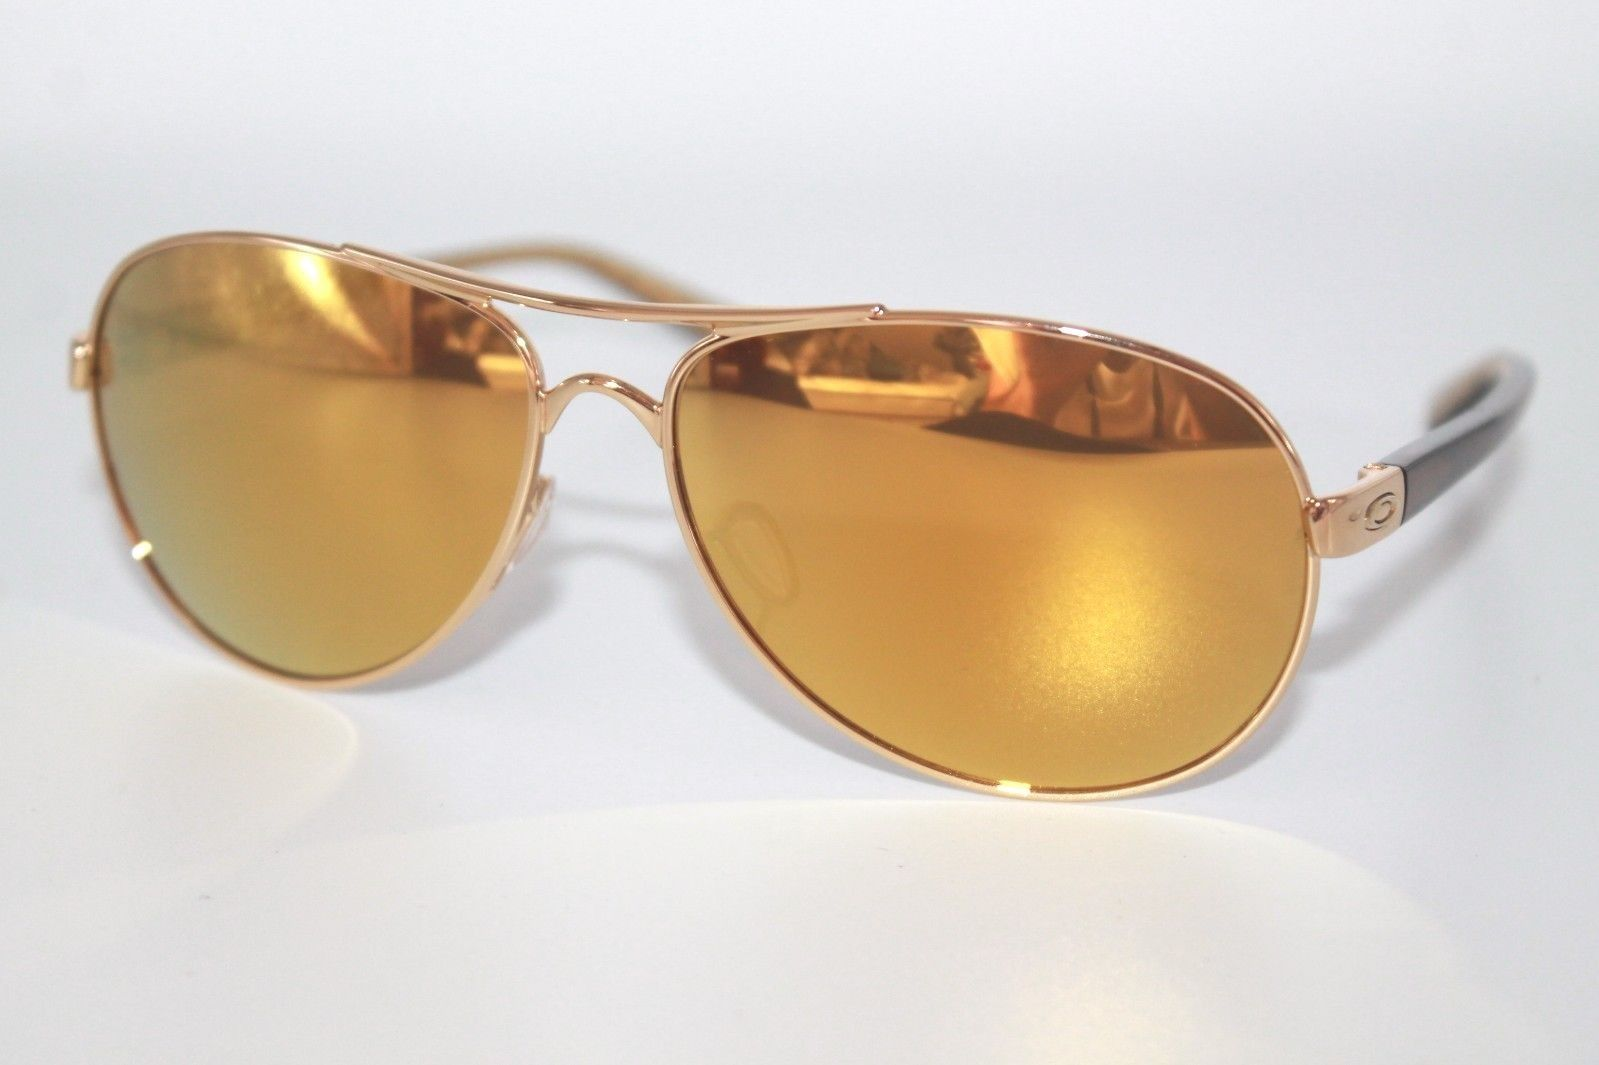 416b17921b 57. 57. Previous. Oakley Feedback Sunglasses OO4079-28 Polished Gold W  24K Gold  iridium Lens. Oakley Feedback ...